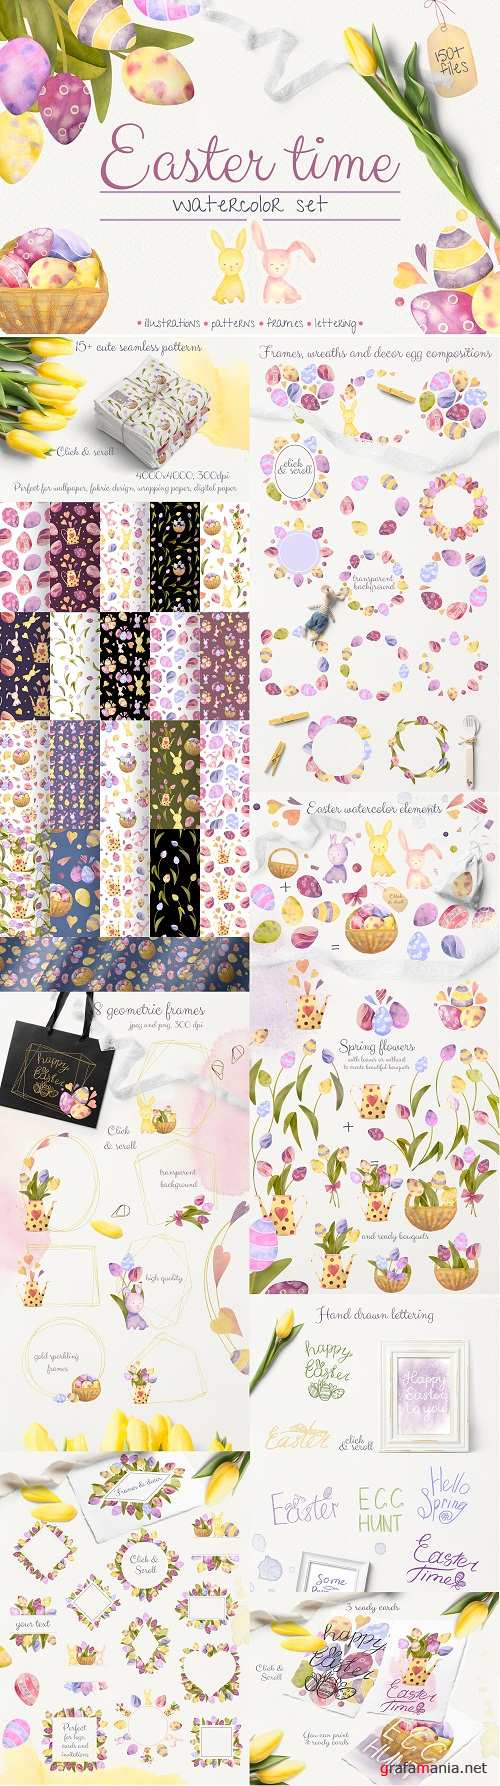 Easter Time. Watercolor spring set - 209677